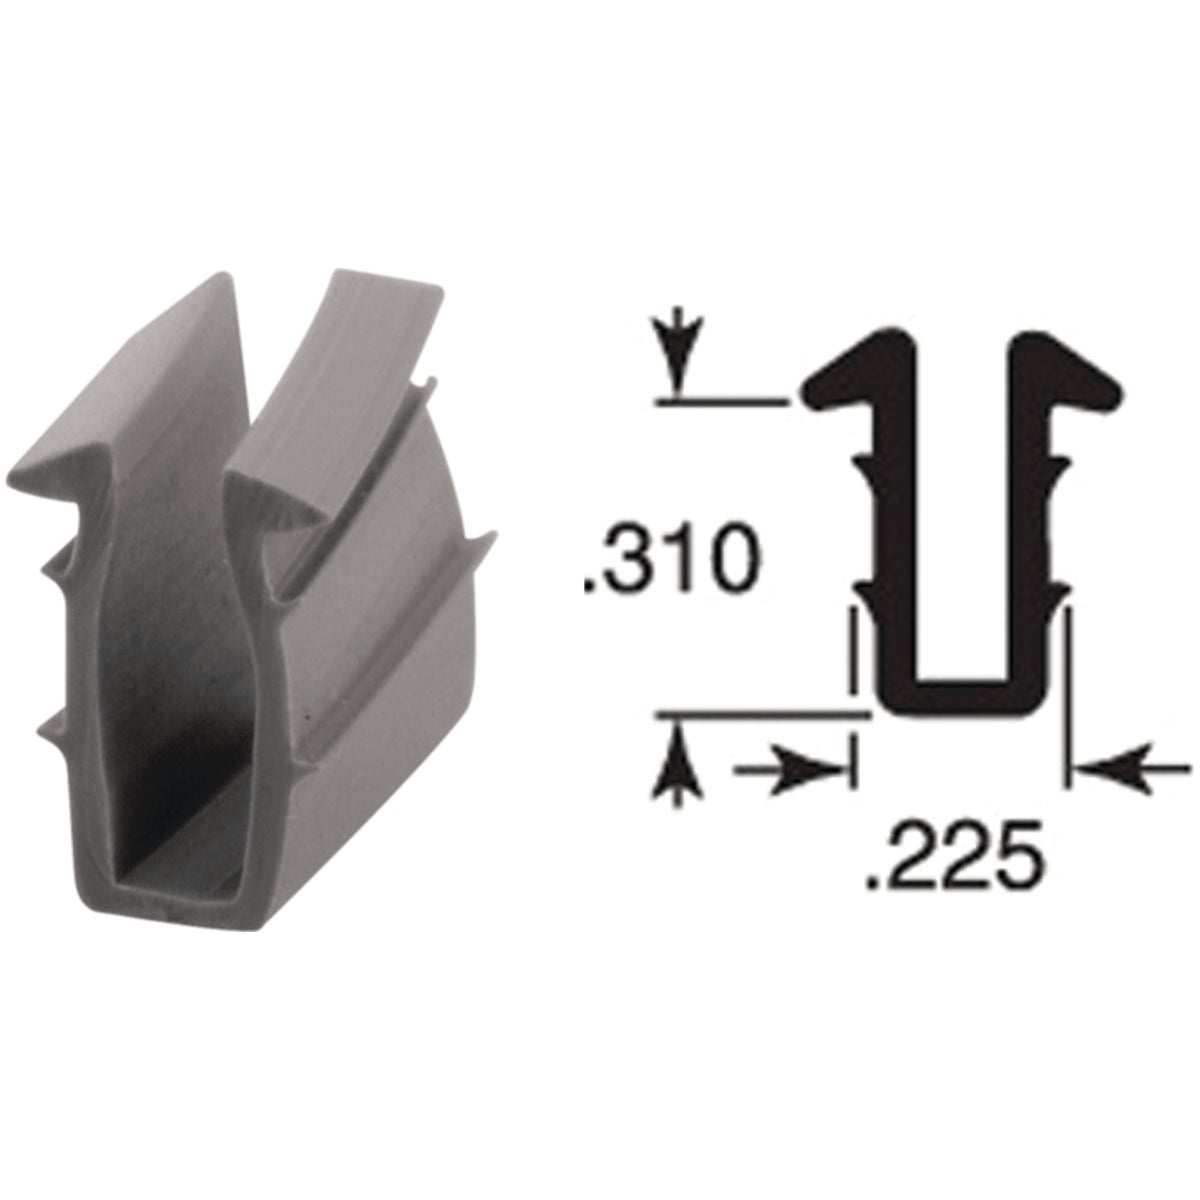 9/32X1/4X200 U-CHANNEL - P7744 by Prime Line Products